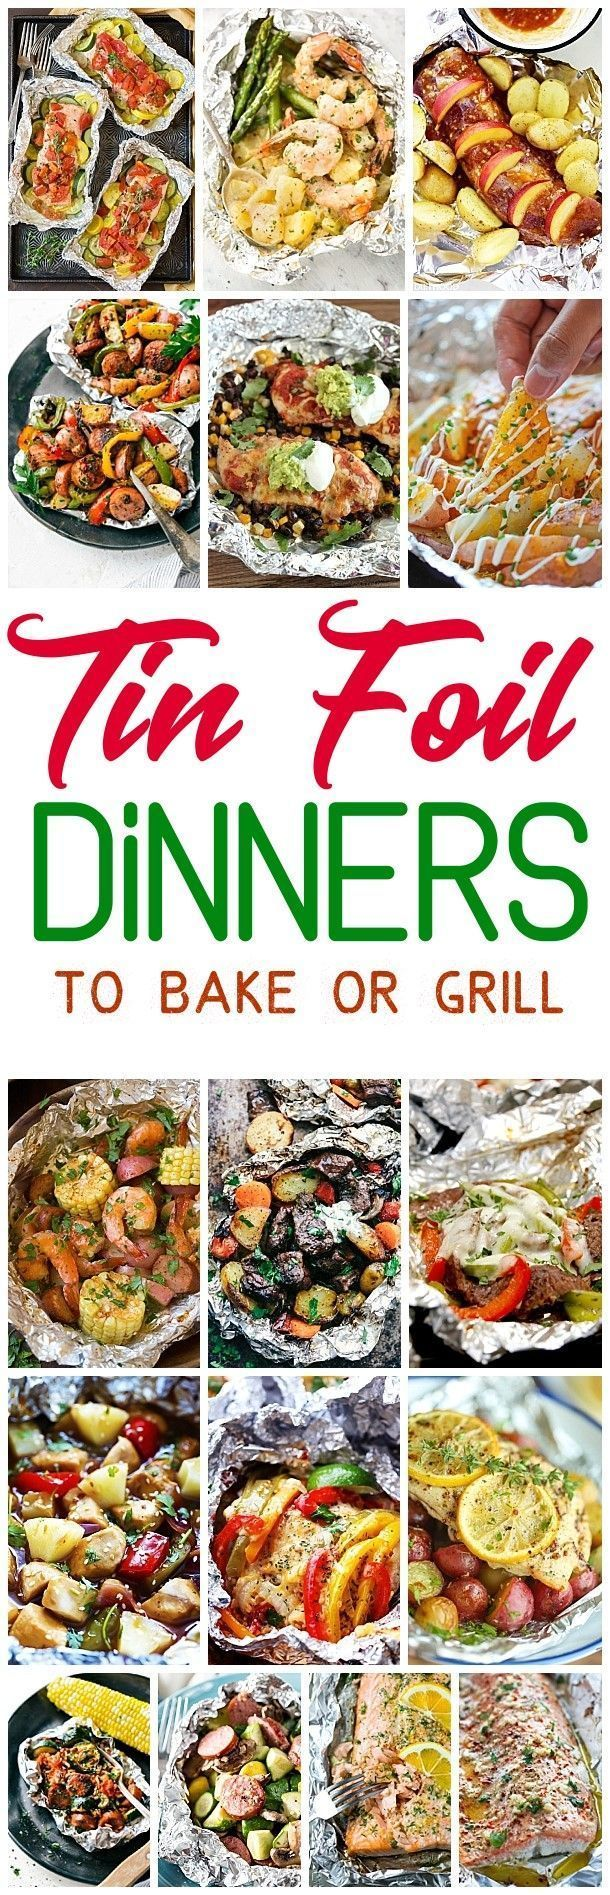 The BEST Tin Foil Dinners Recipes to Bake or Grill - Quick and Easy Meal Prep solution and cleanup recipes! So many delicious chicken, beef, salmon, pork, shrimp and chicken tin foil packet dinners you and your family can enjoy making in the oven all year